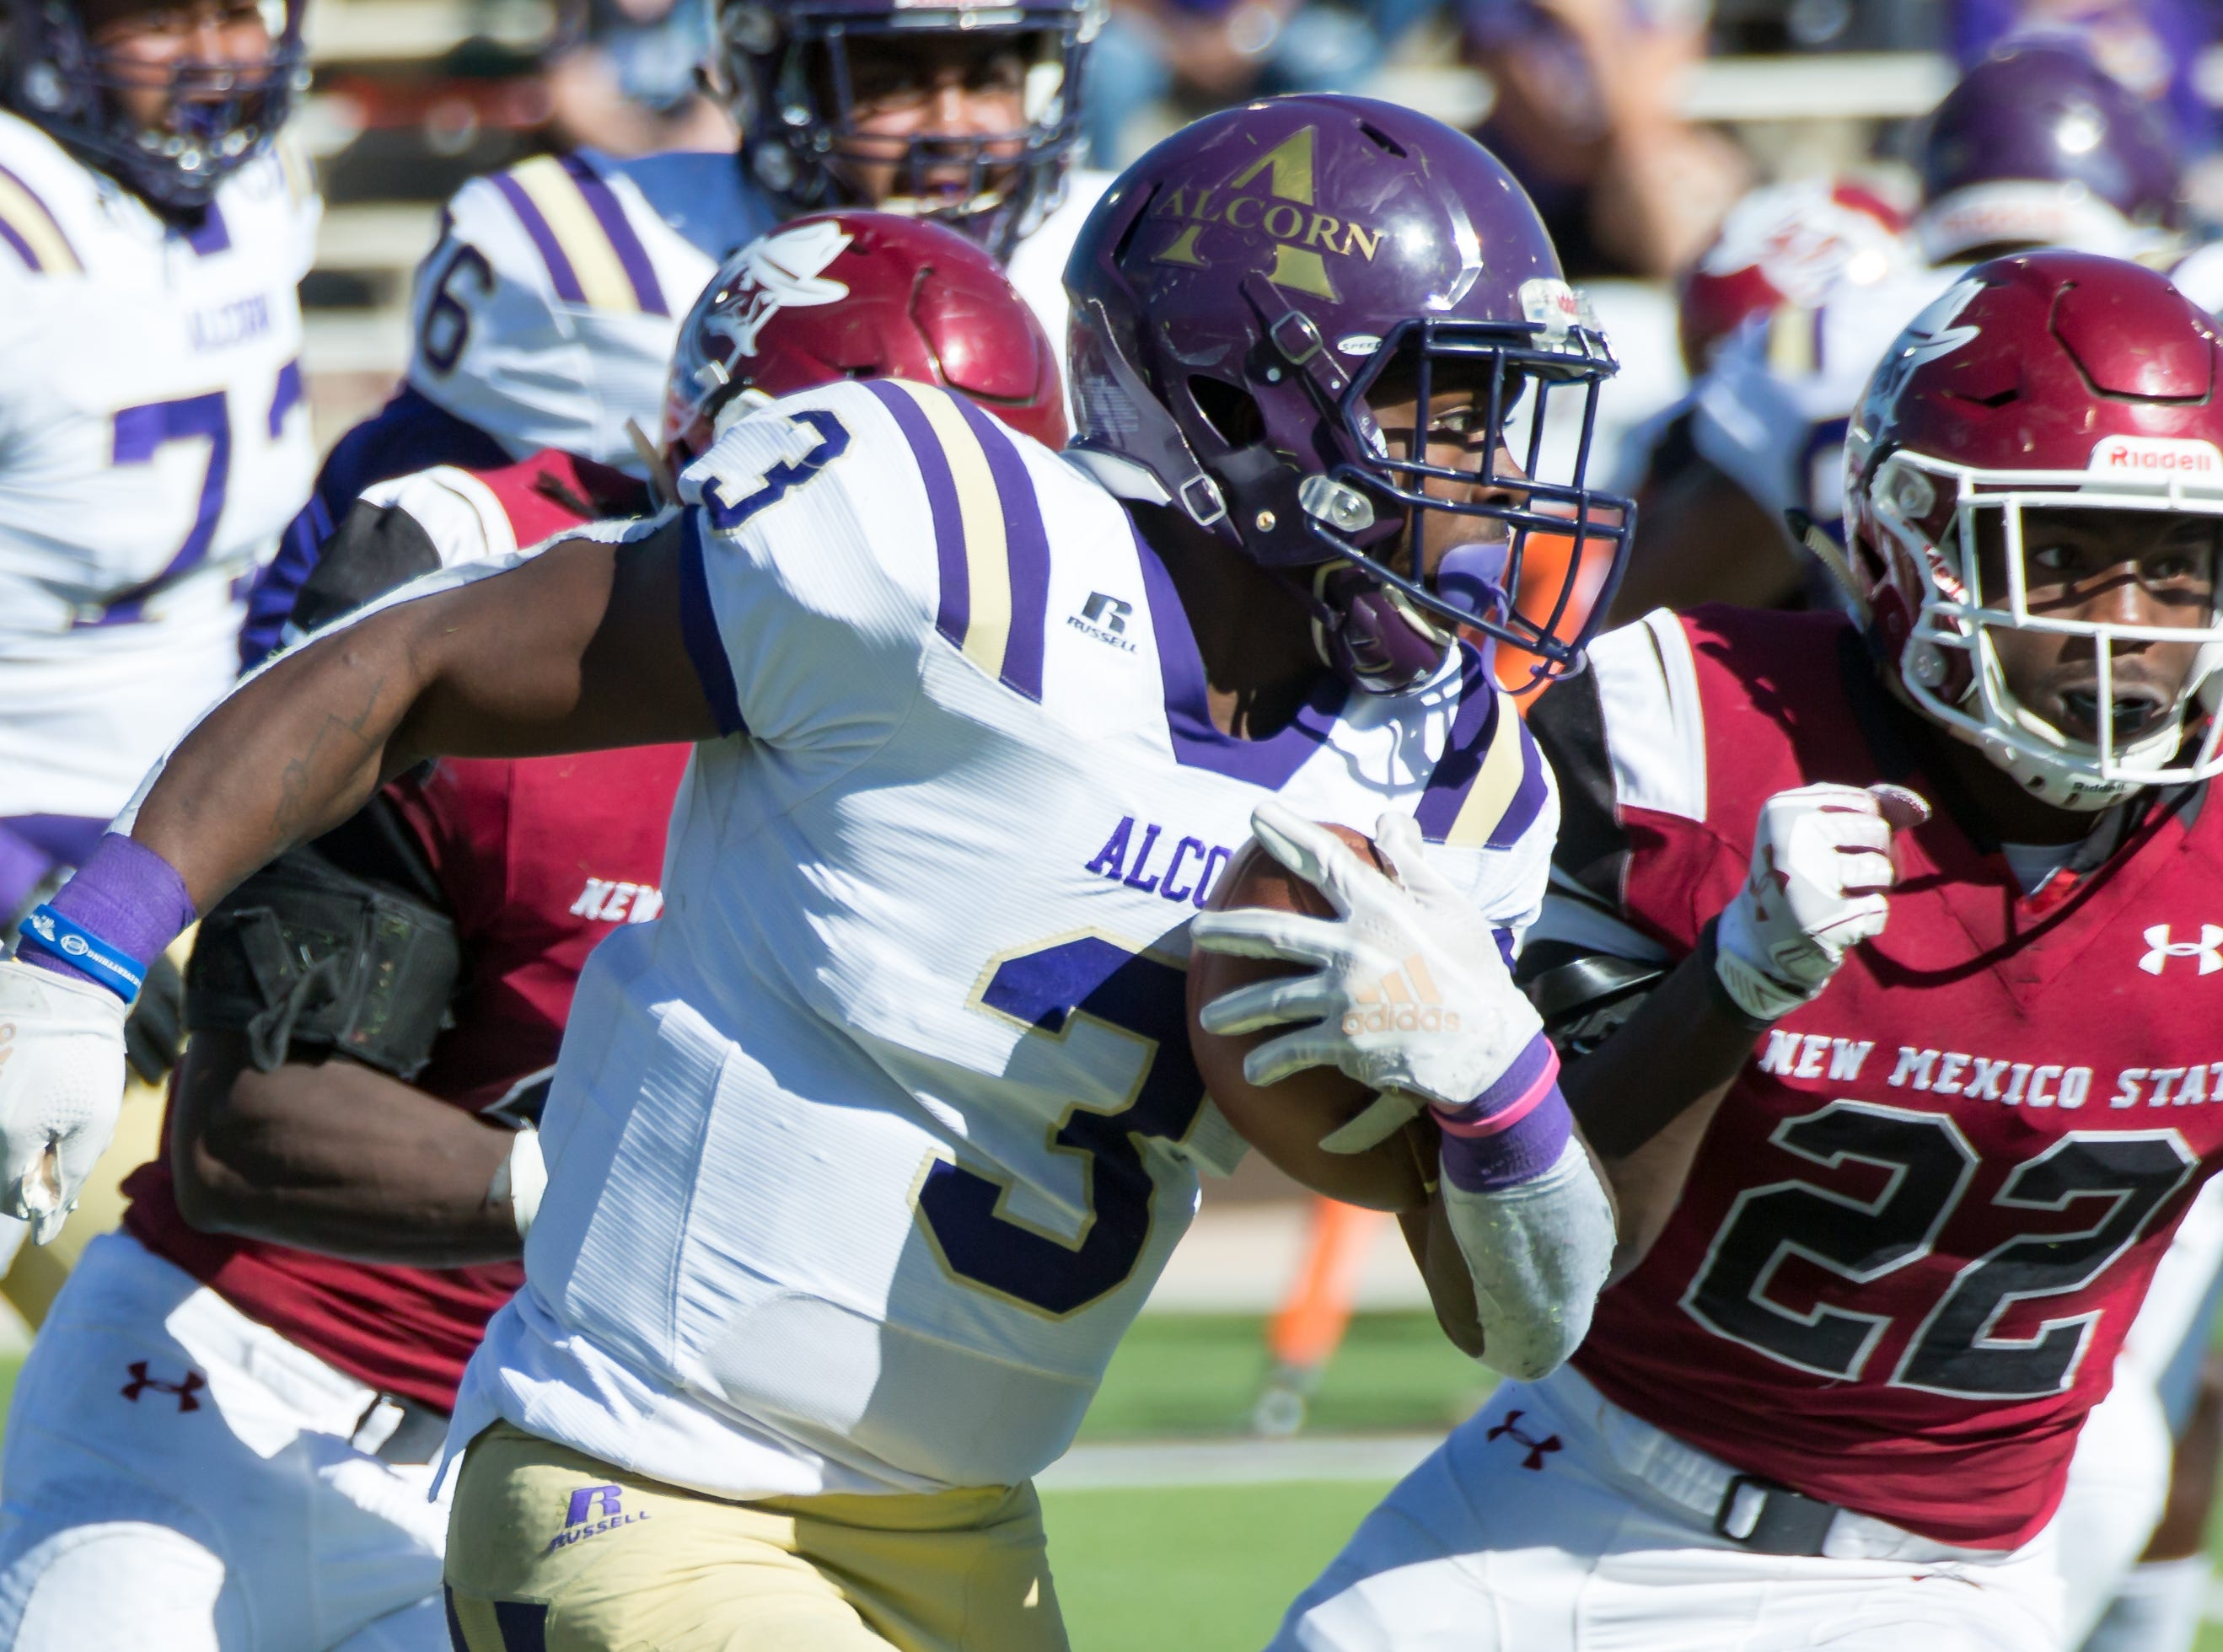 Alcorn State's De'Shawn Waller looks for yards while his NMSU oppponents are near by on Saturday, Nov. 3, 2018 at Aggie Memorial Stadium,